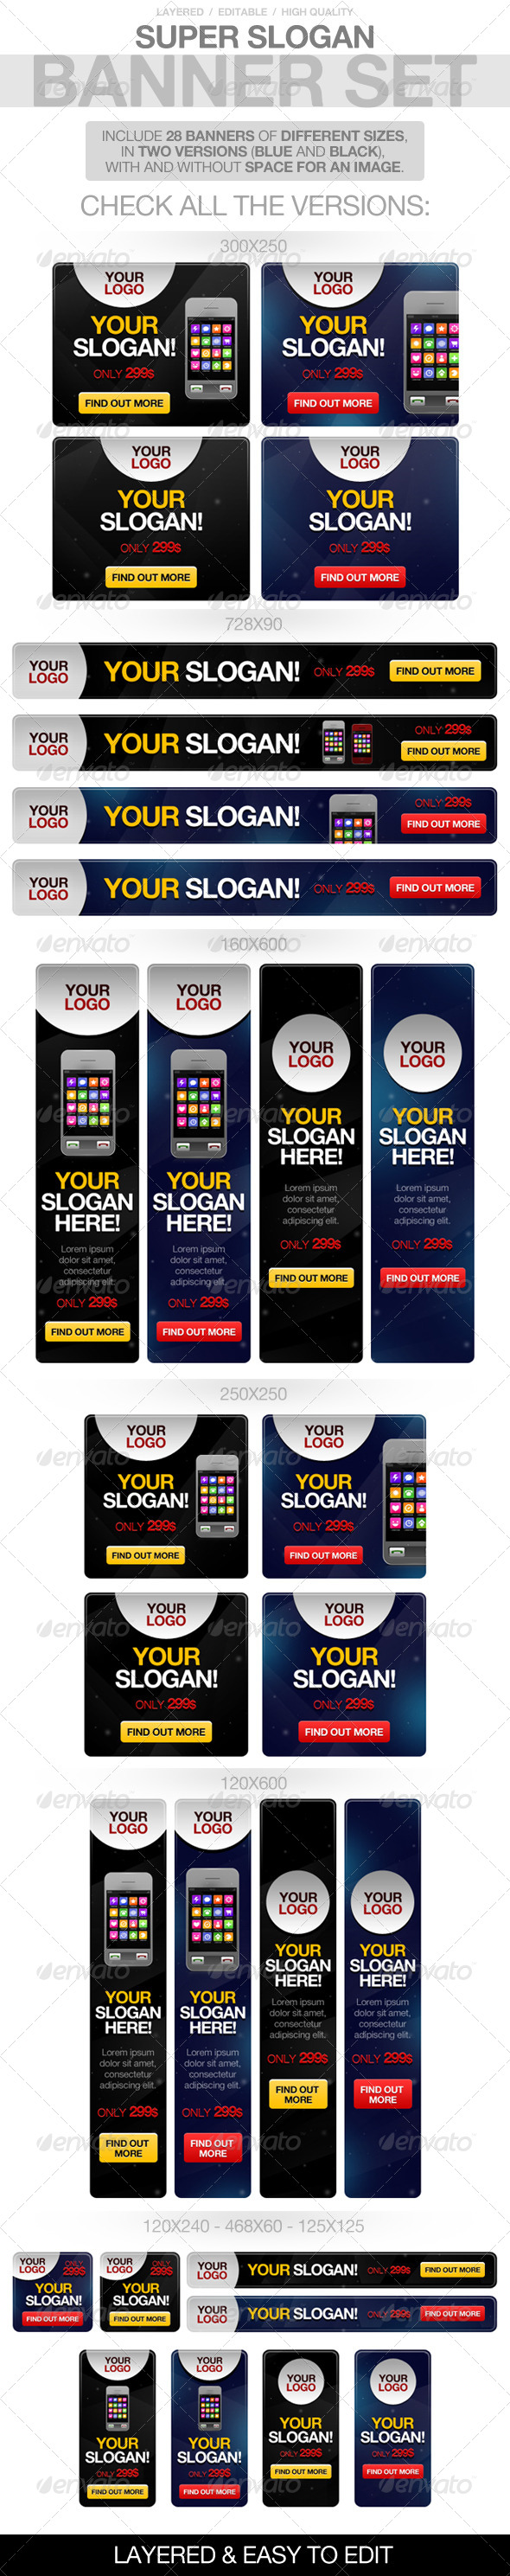 Slogan Banners - Banners & Ads Web Elements